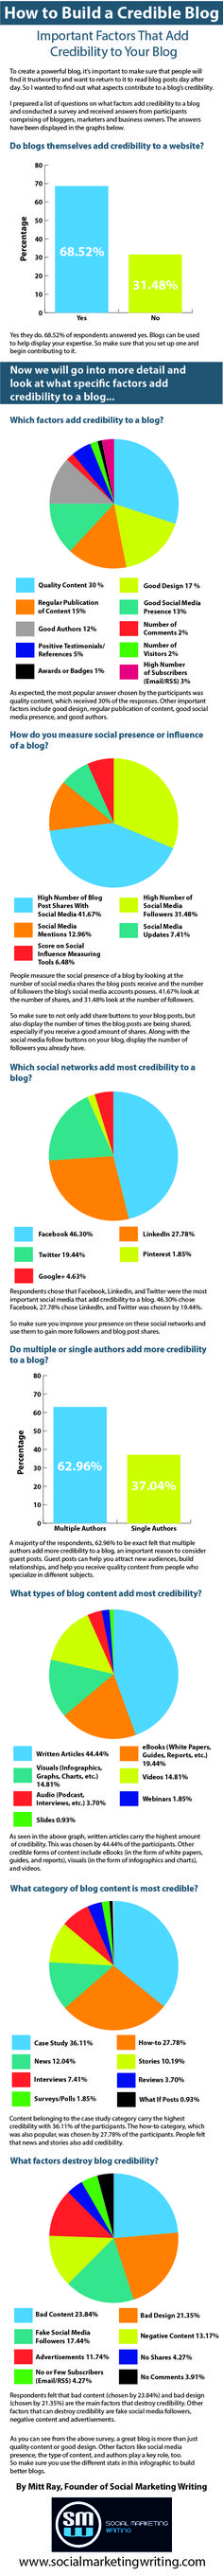 How to Build a Credible Blog that People Trust